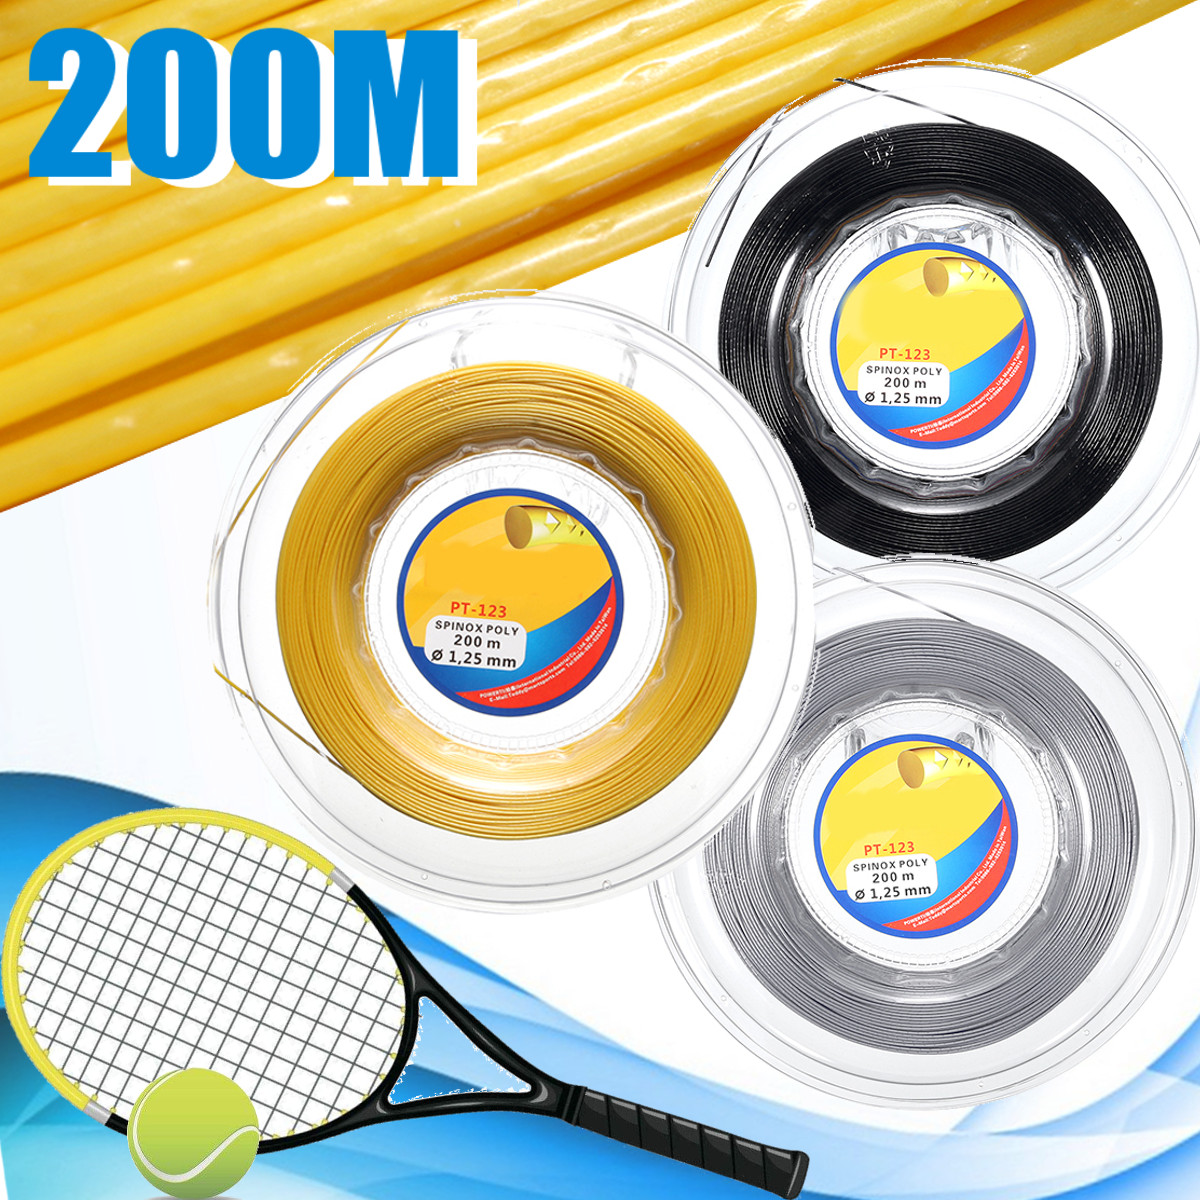 200M Multicolor Tennis Racket Racquet Strings Co-Polyester Monofibre Sports Reel